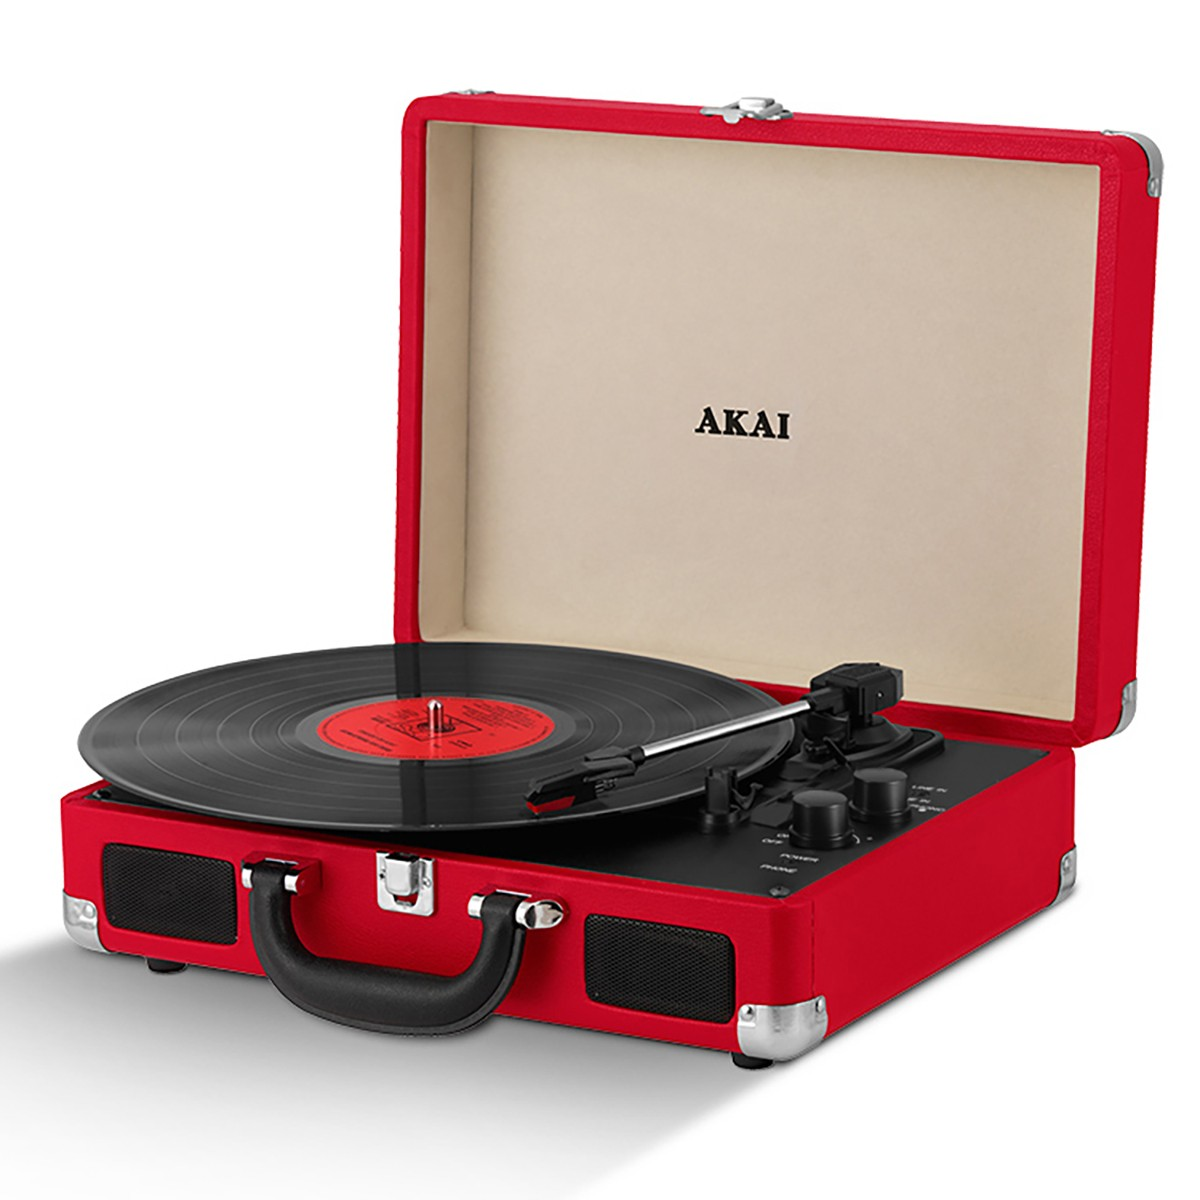 akai-turntable-red-side